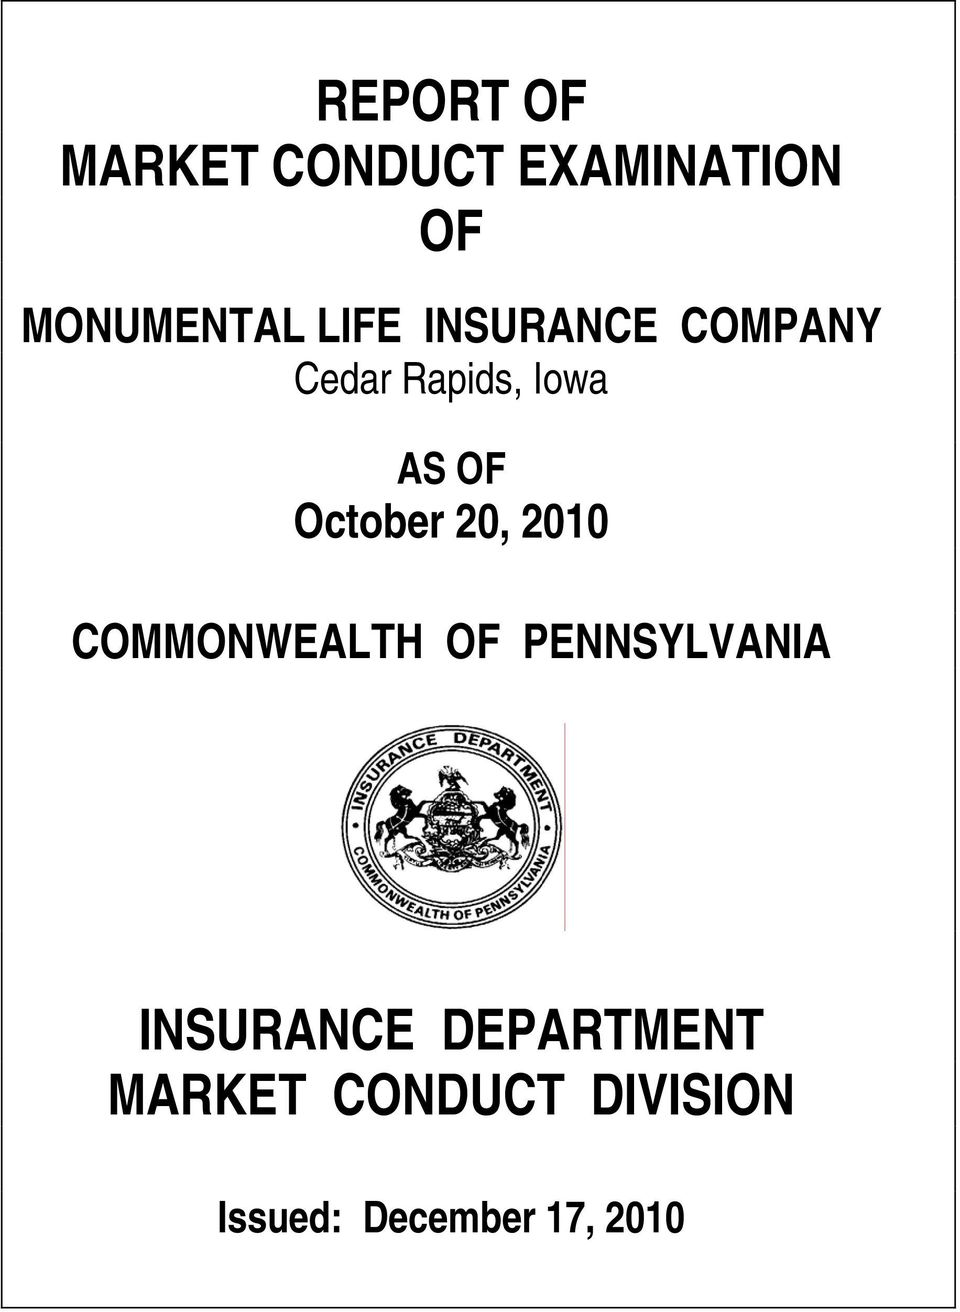 October 20, 2010 COMMONWEALTH OF PENNSYLVANIA